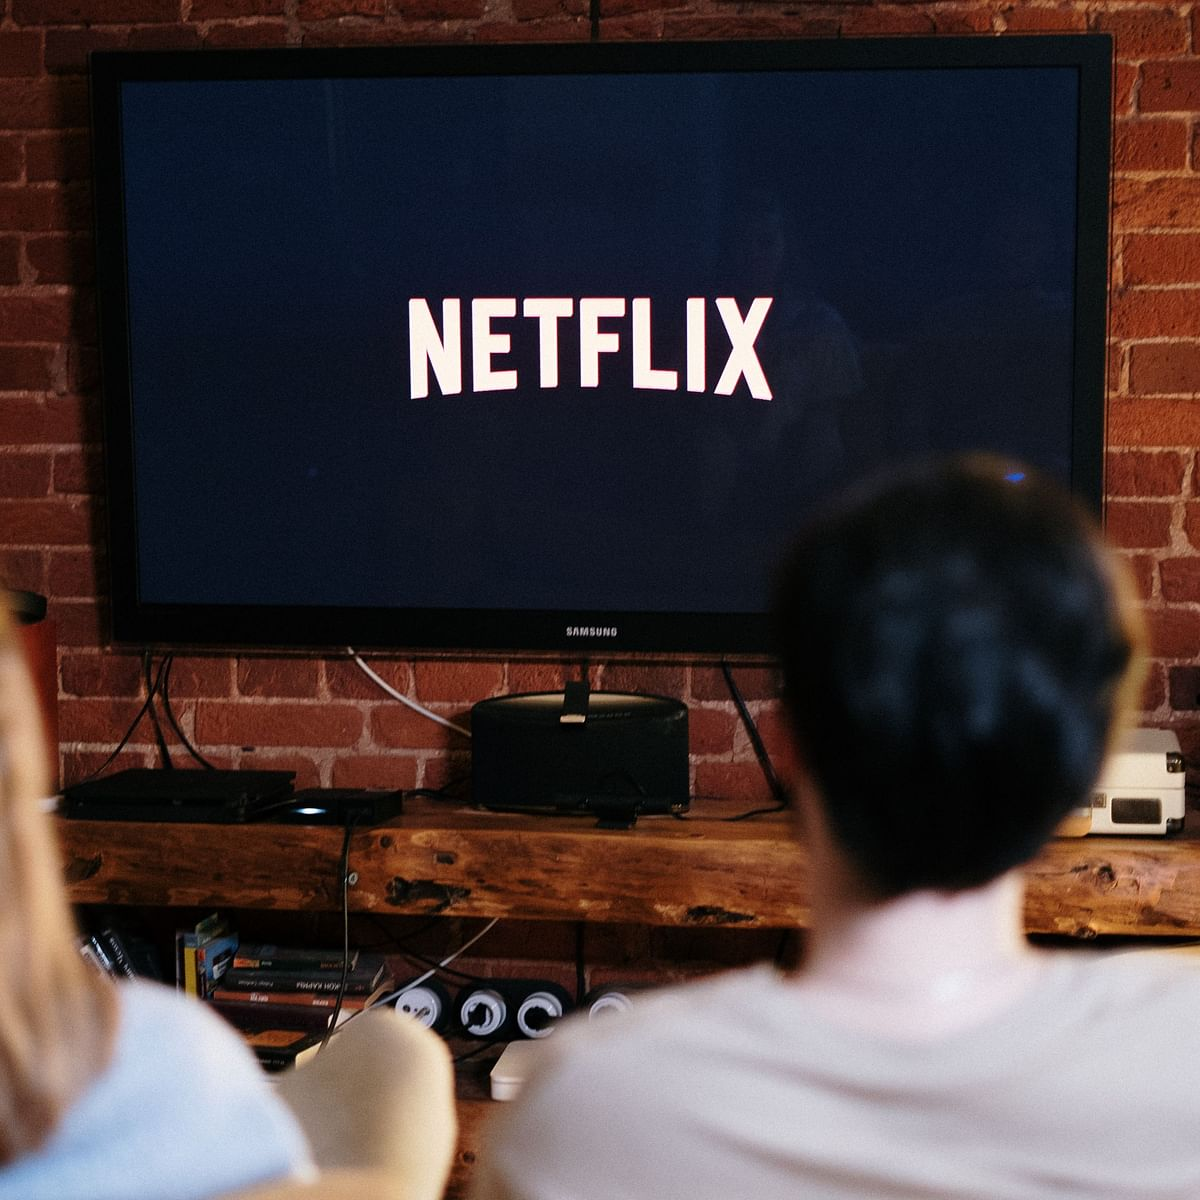 Netflix won't let you share password if...: Check out streaming service's new terms and conditions